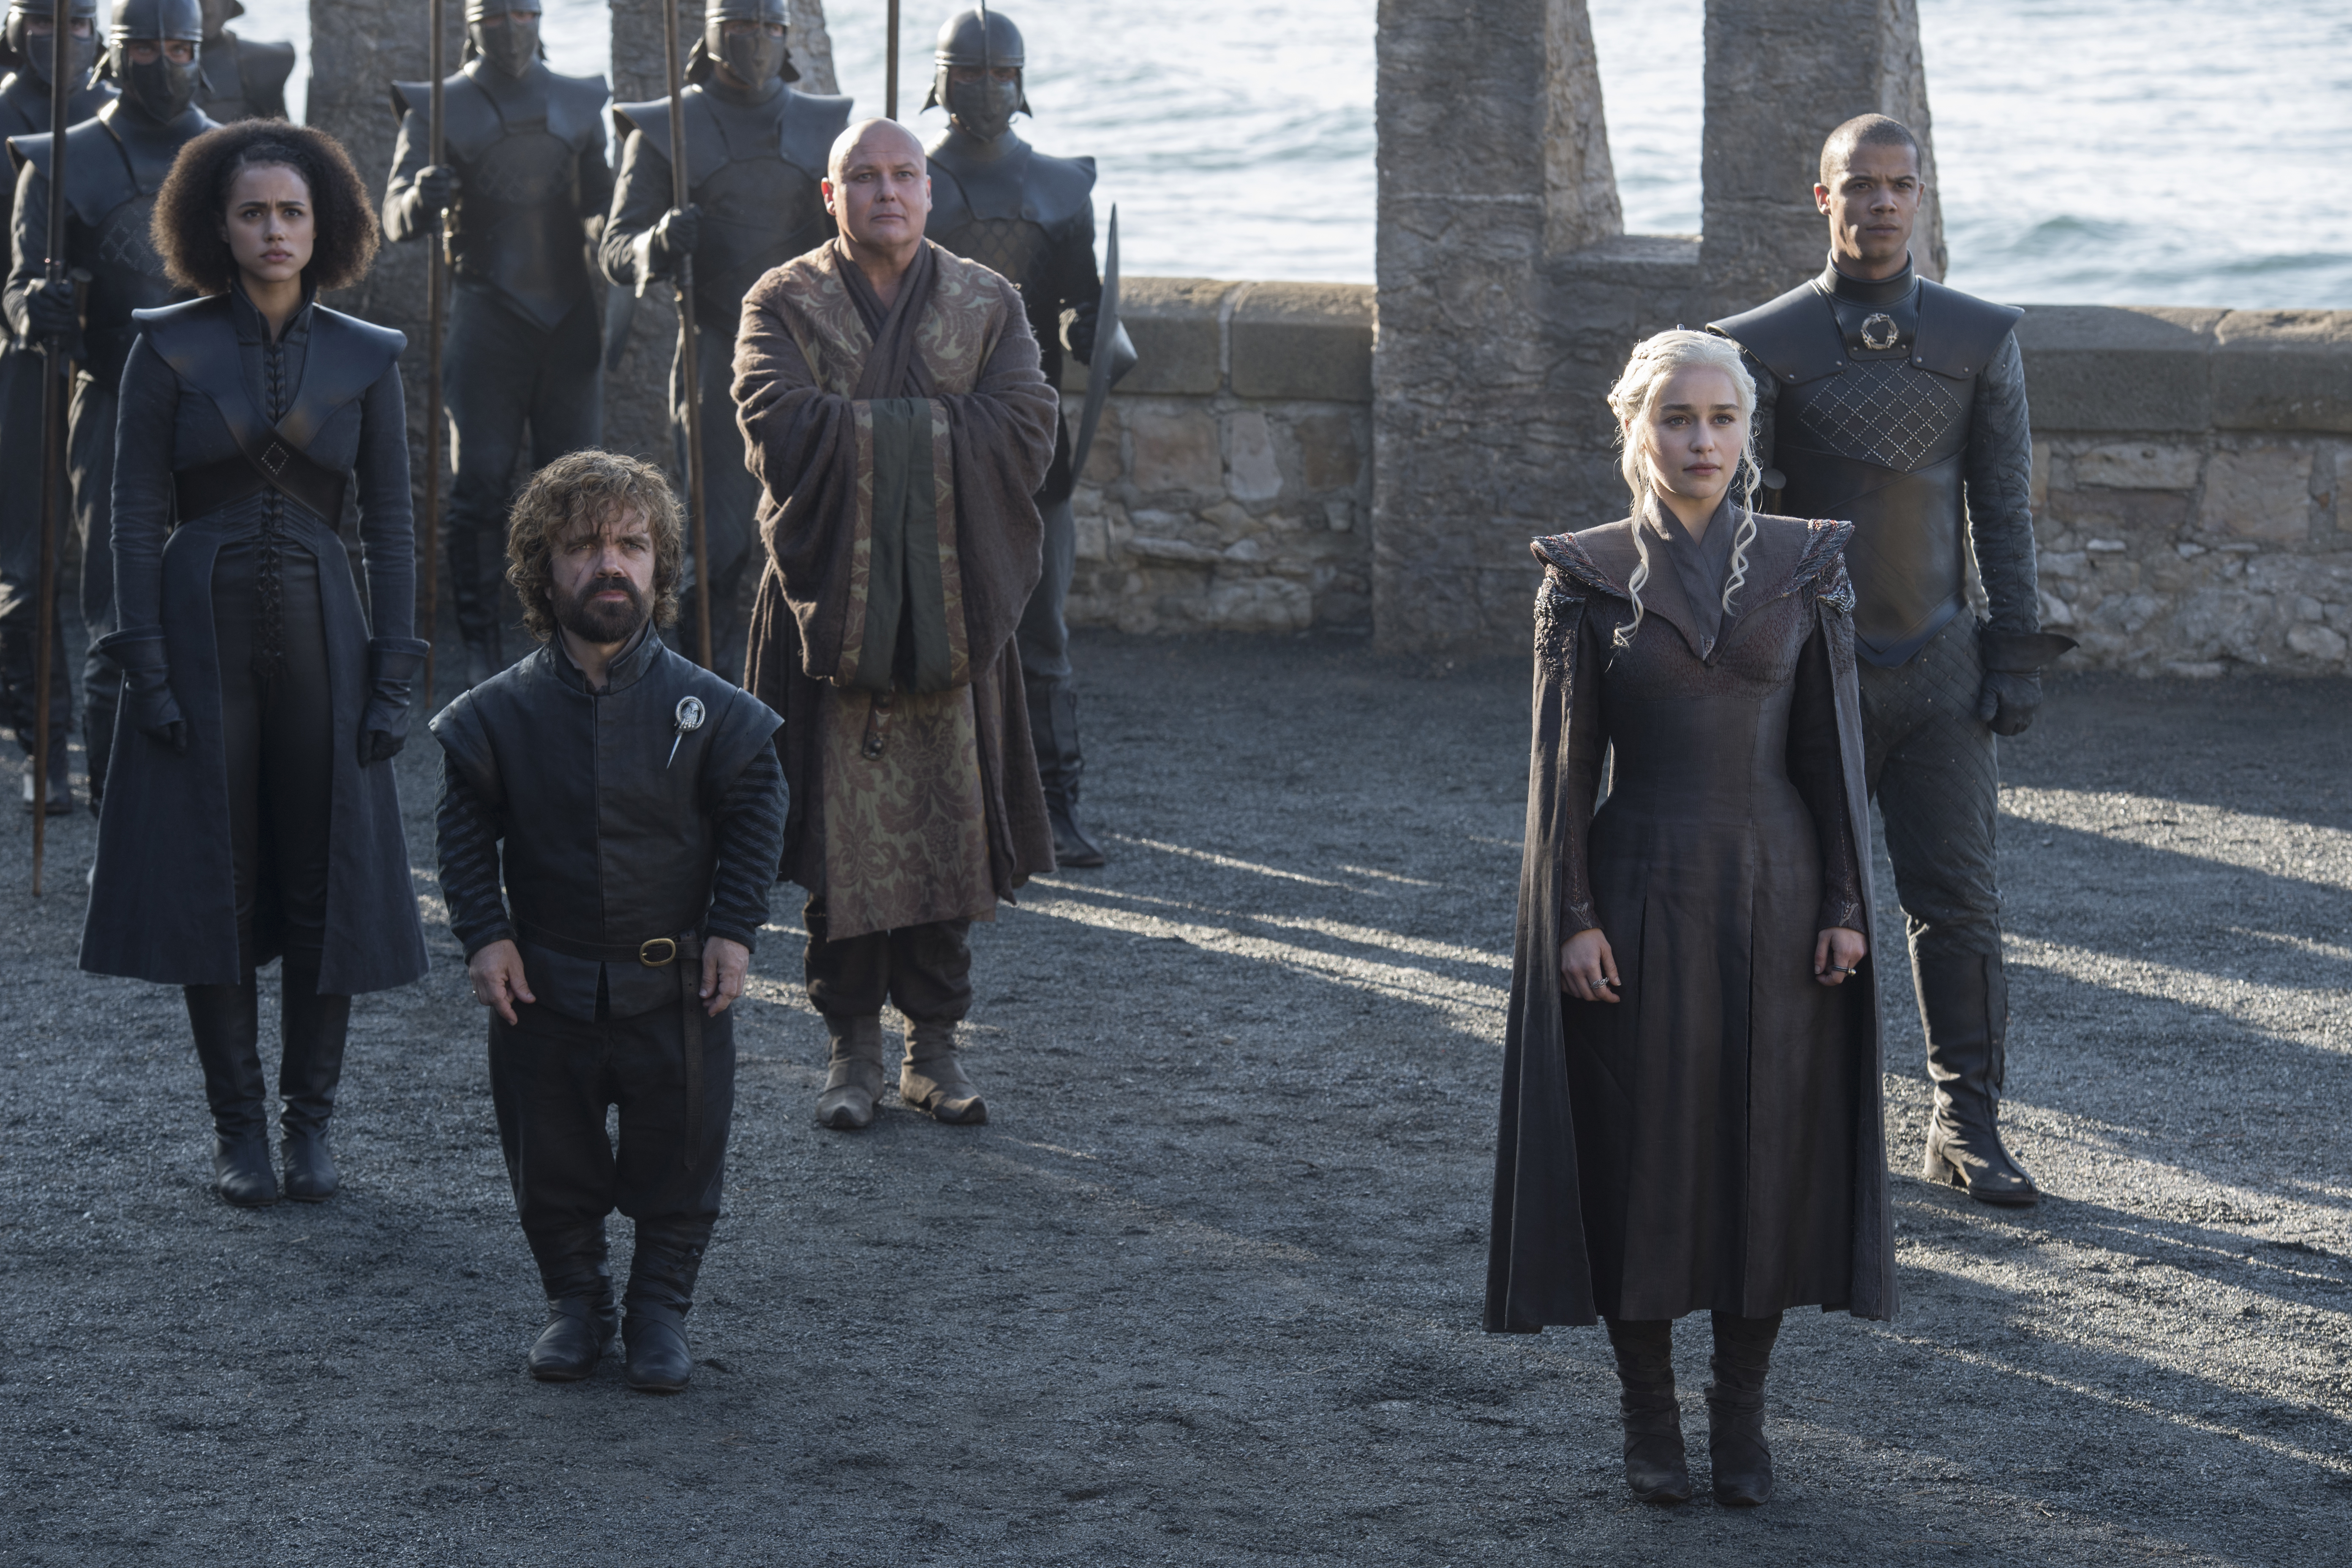 KHALEESI. Emilia Clarke plays Daenerys Targaryen, the Mother of Dragons, in 'Game of Thrones. Left to right: Nathalie Emmanuel, Peter Dinklage, Conleth Hill, Emilia Clarke, and Jacob Anderson. Photo by Macall B. Polay/HBO